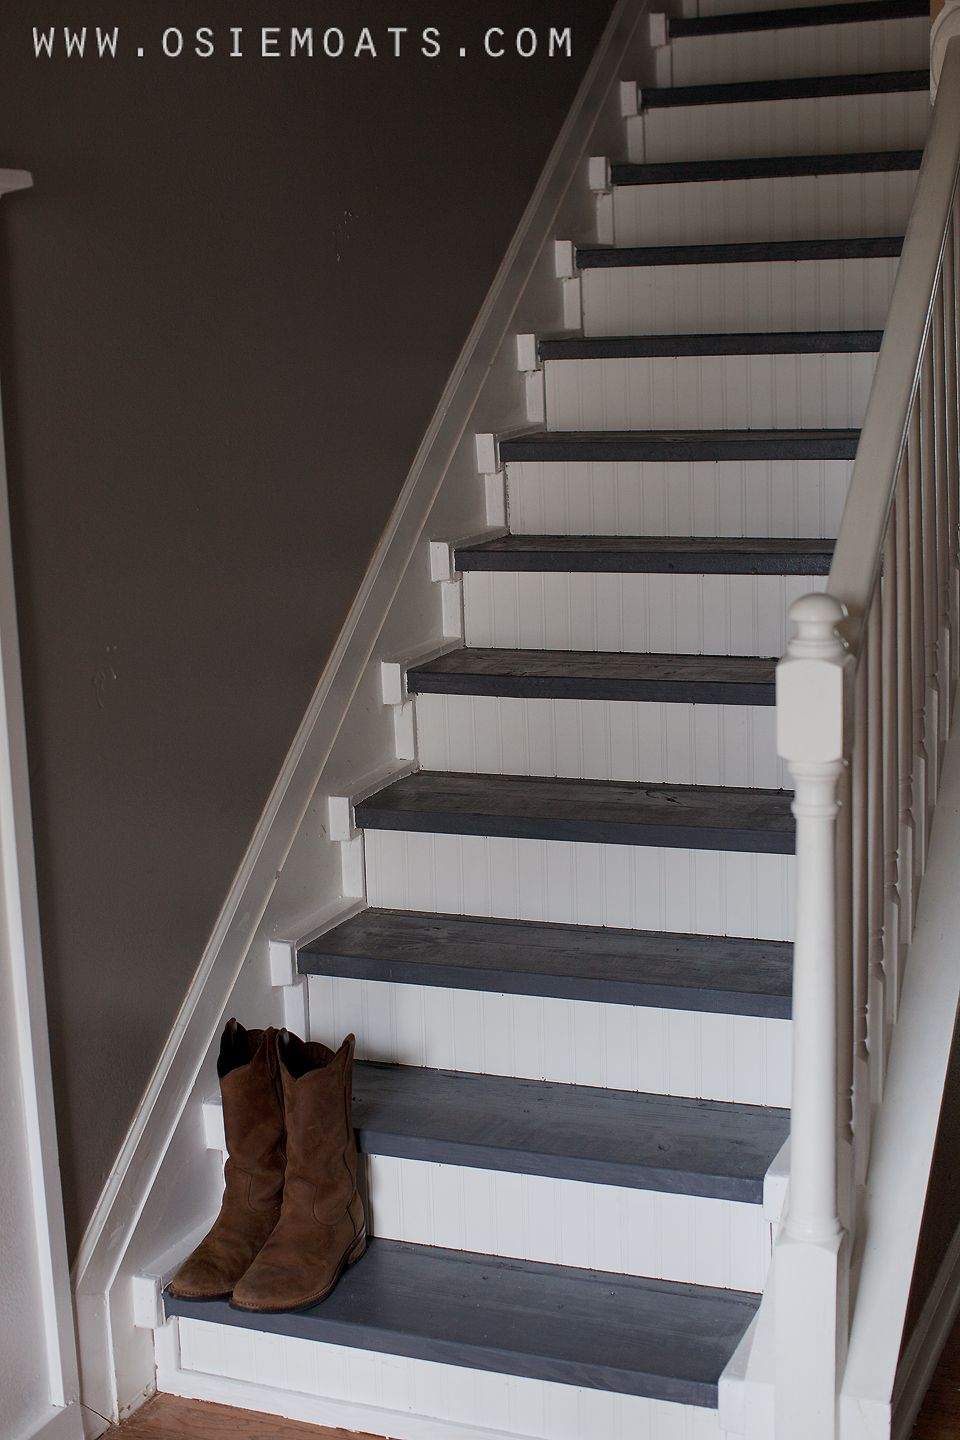 Best Osie Moats Diy Lifestyle Decorating Blog Diy 50 Stair 400 x 300